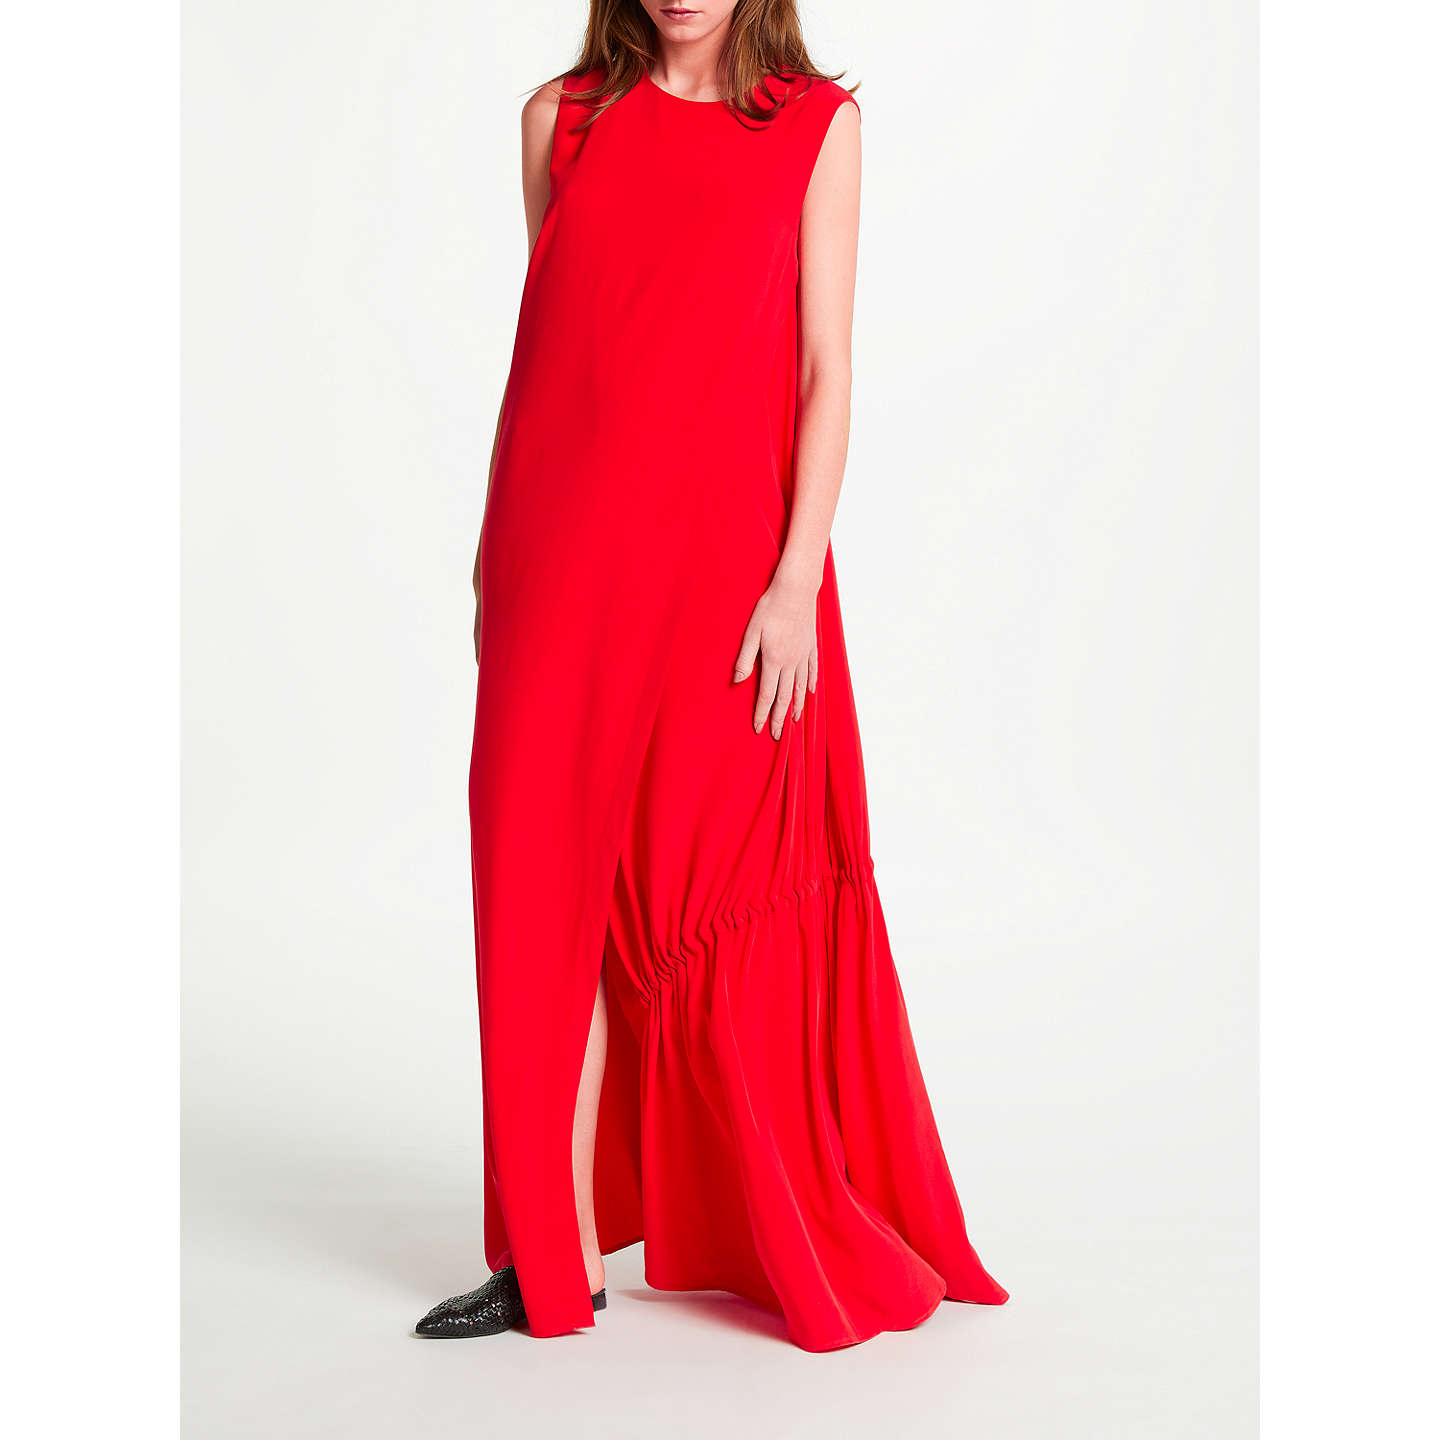 BuyModern Rarity Eudon Choi Tissot Dress, Red, 8 Online at johnlewis.com